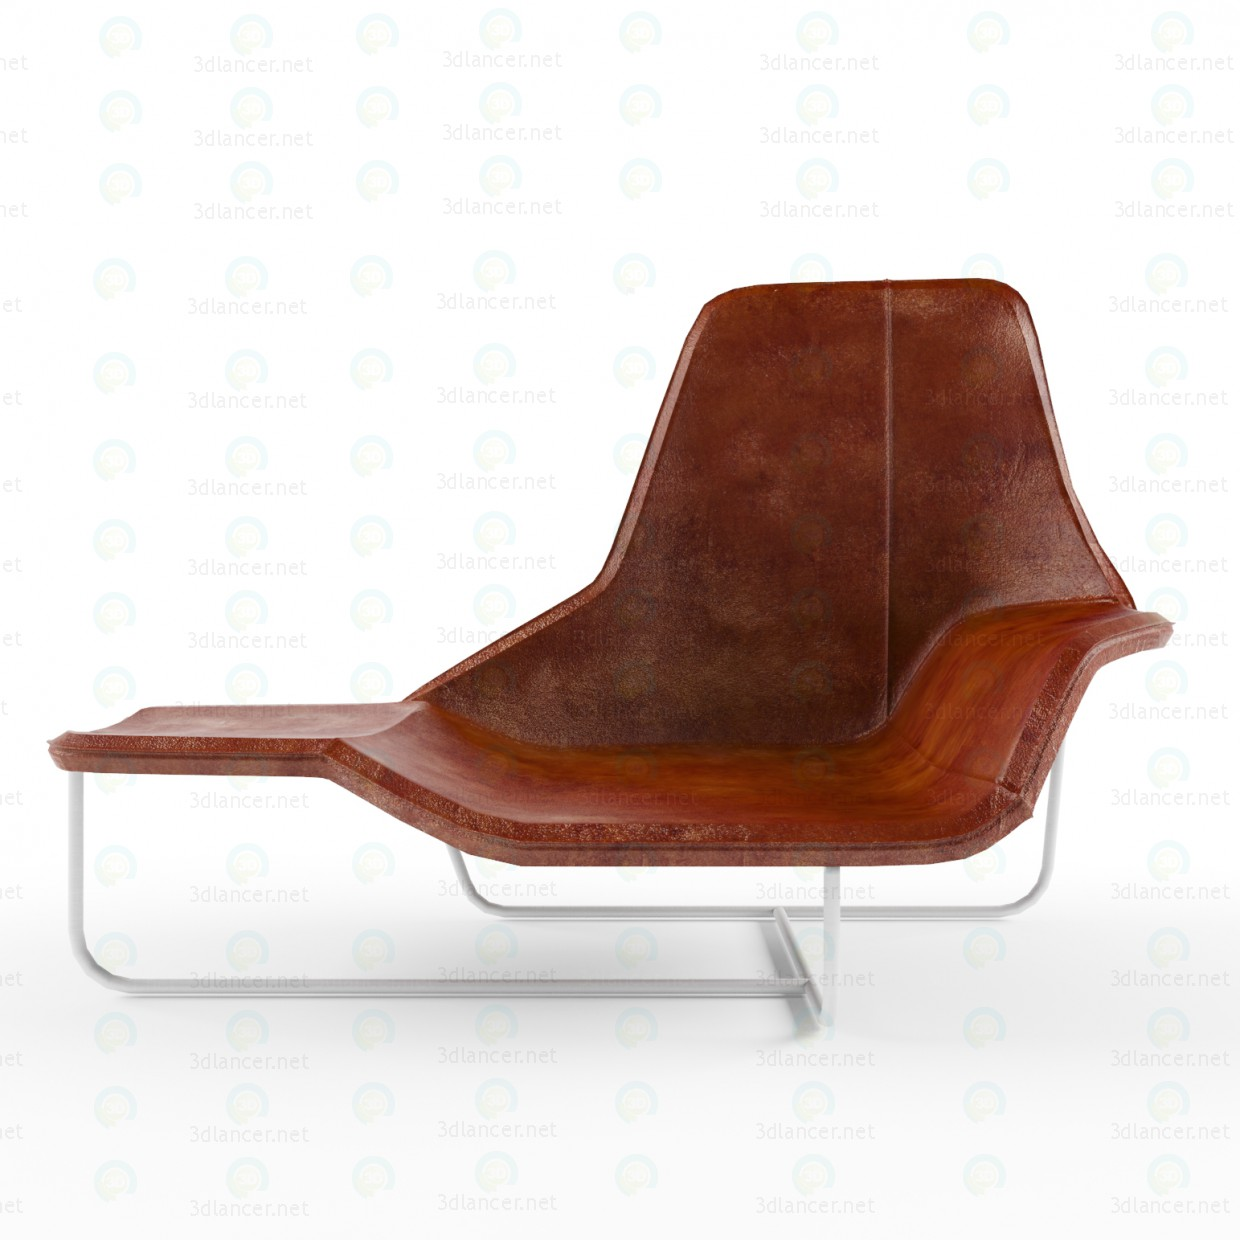 3d model chaise longue lama in the style of minimalism id for Chaise longue chilienne